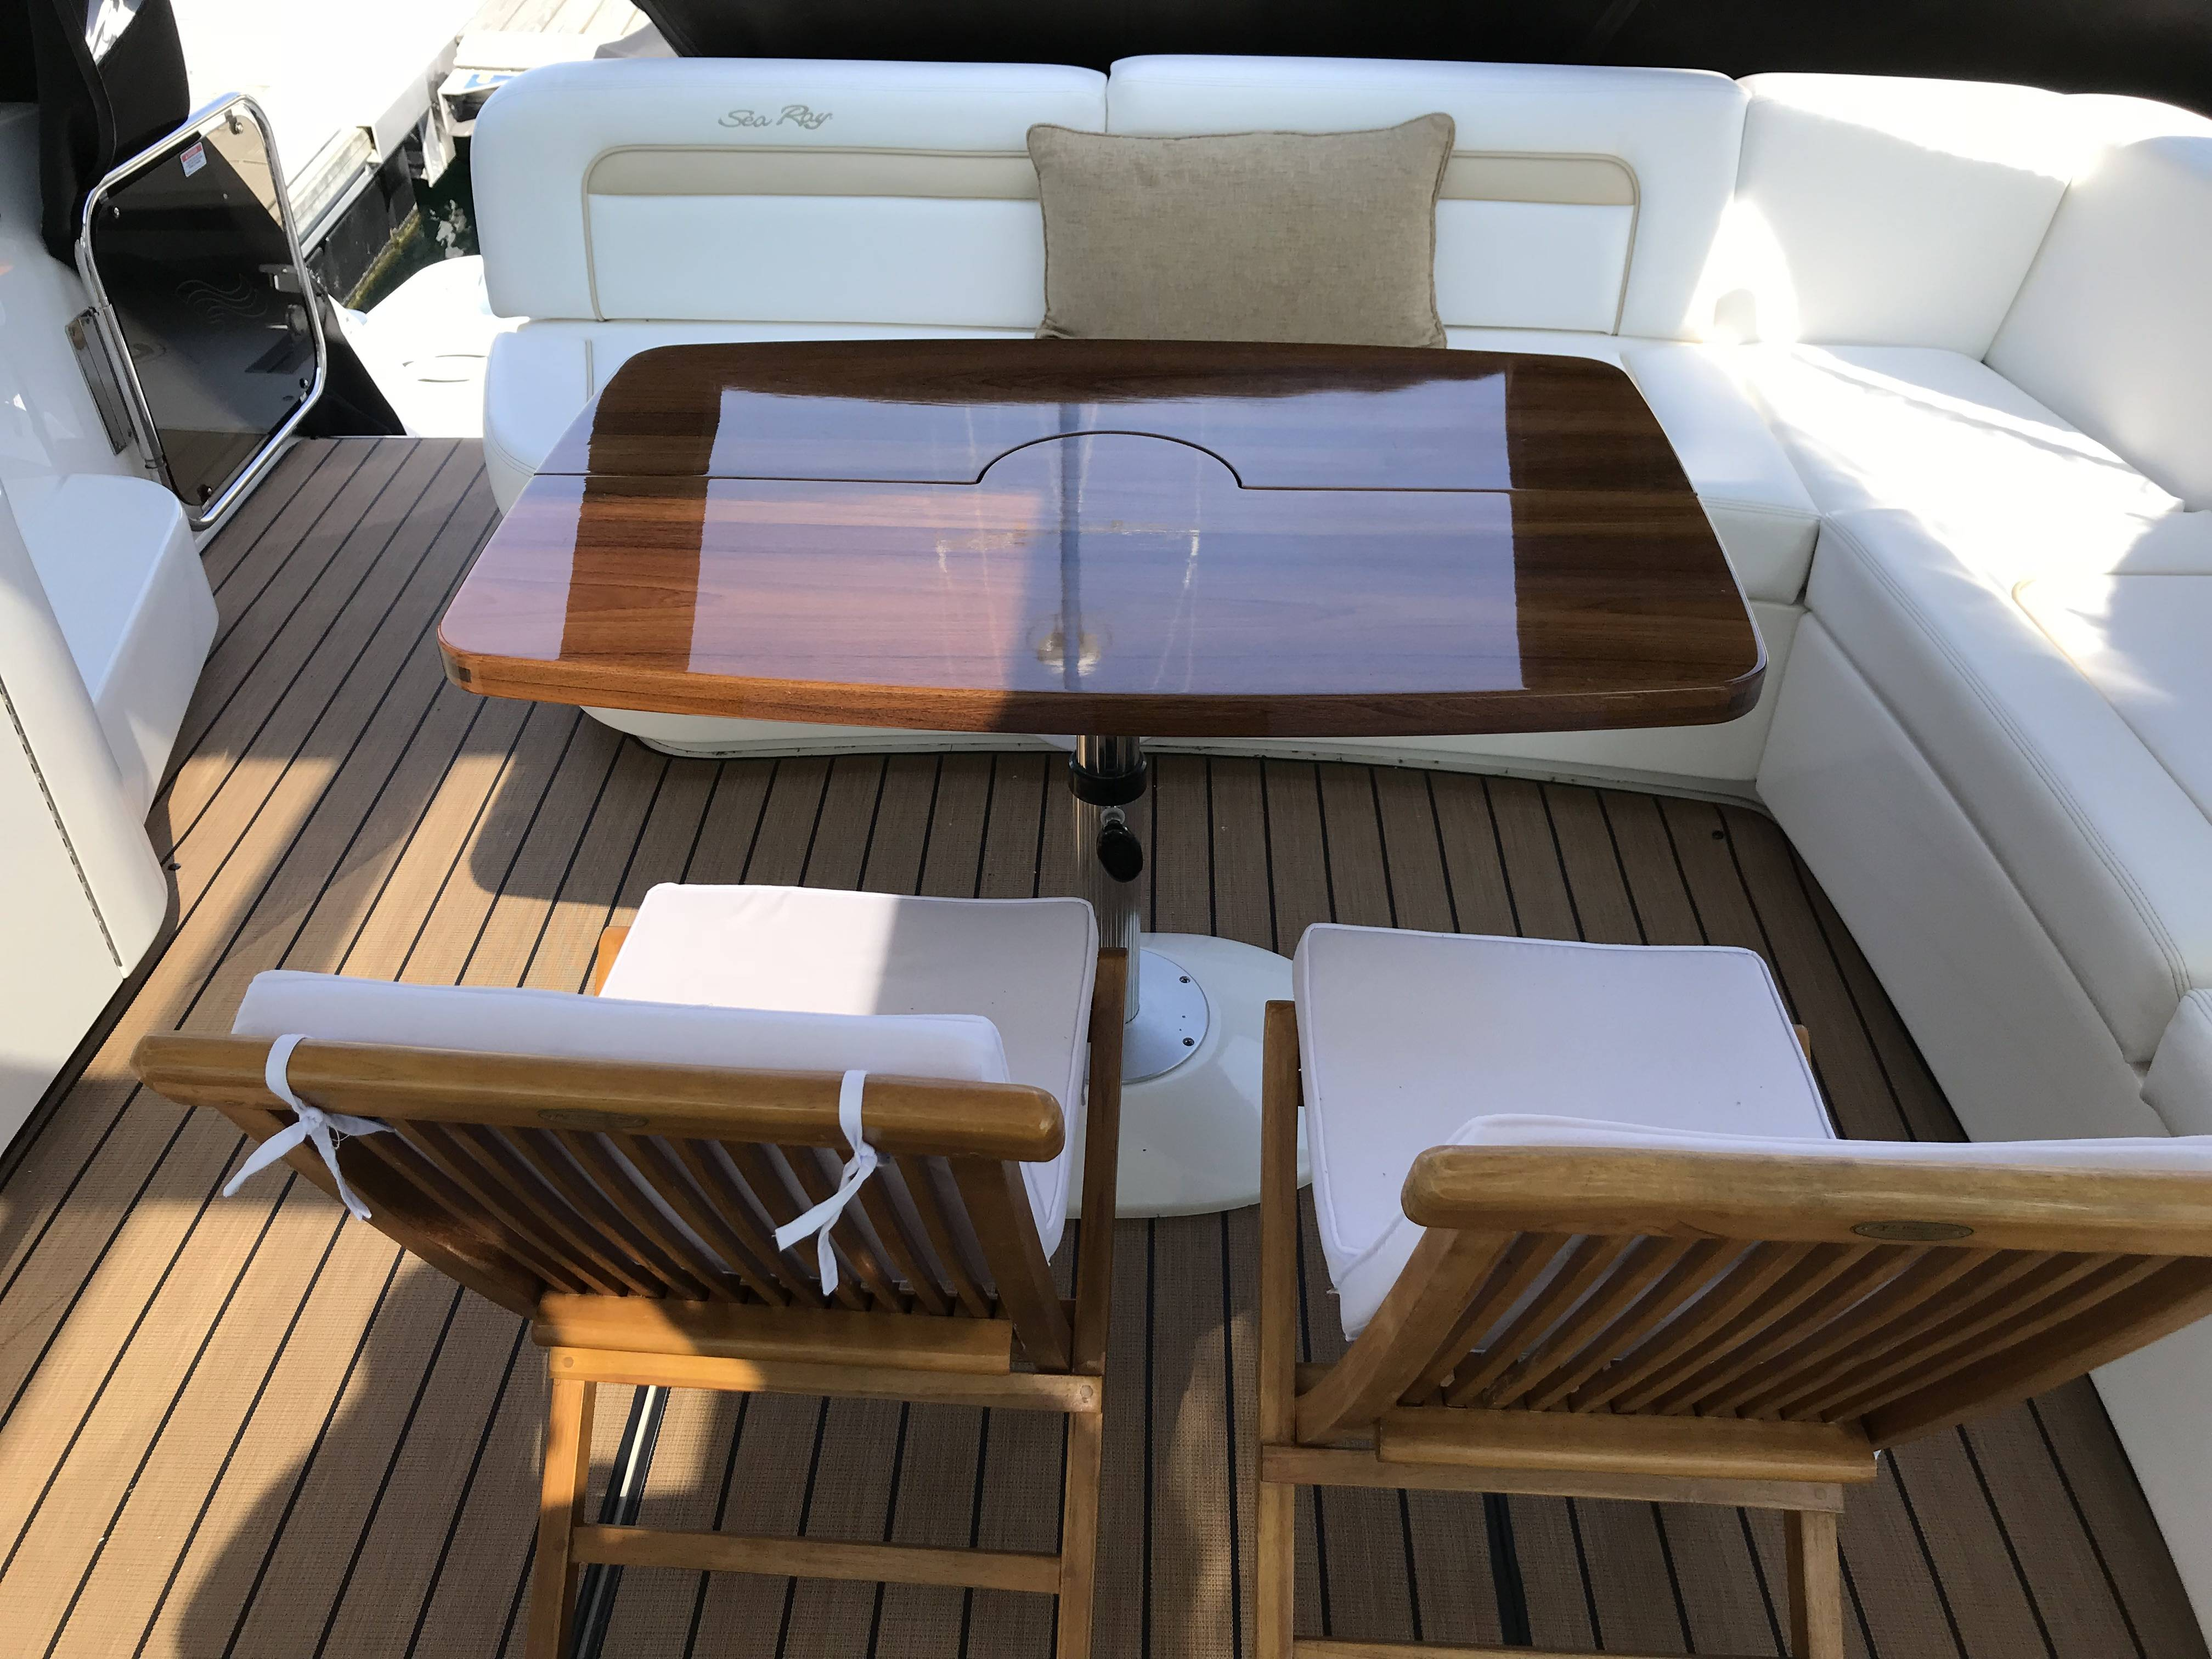 2010 Sea Ray boat for sale, model of the boat is 540 SUNDANCER & Image # 14 of 28